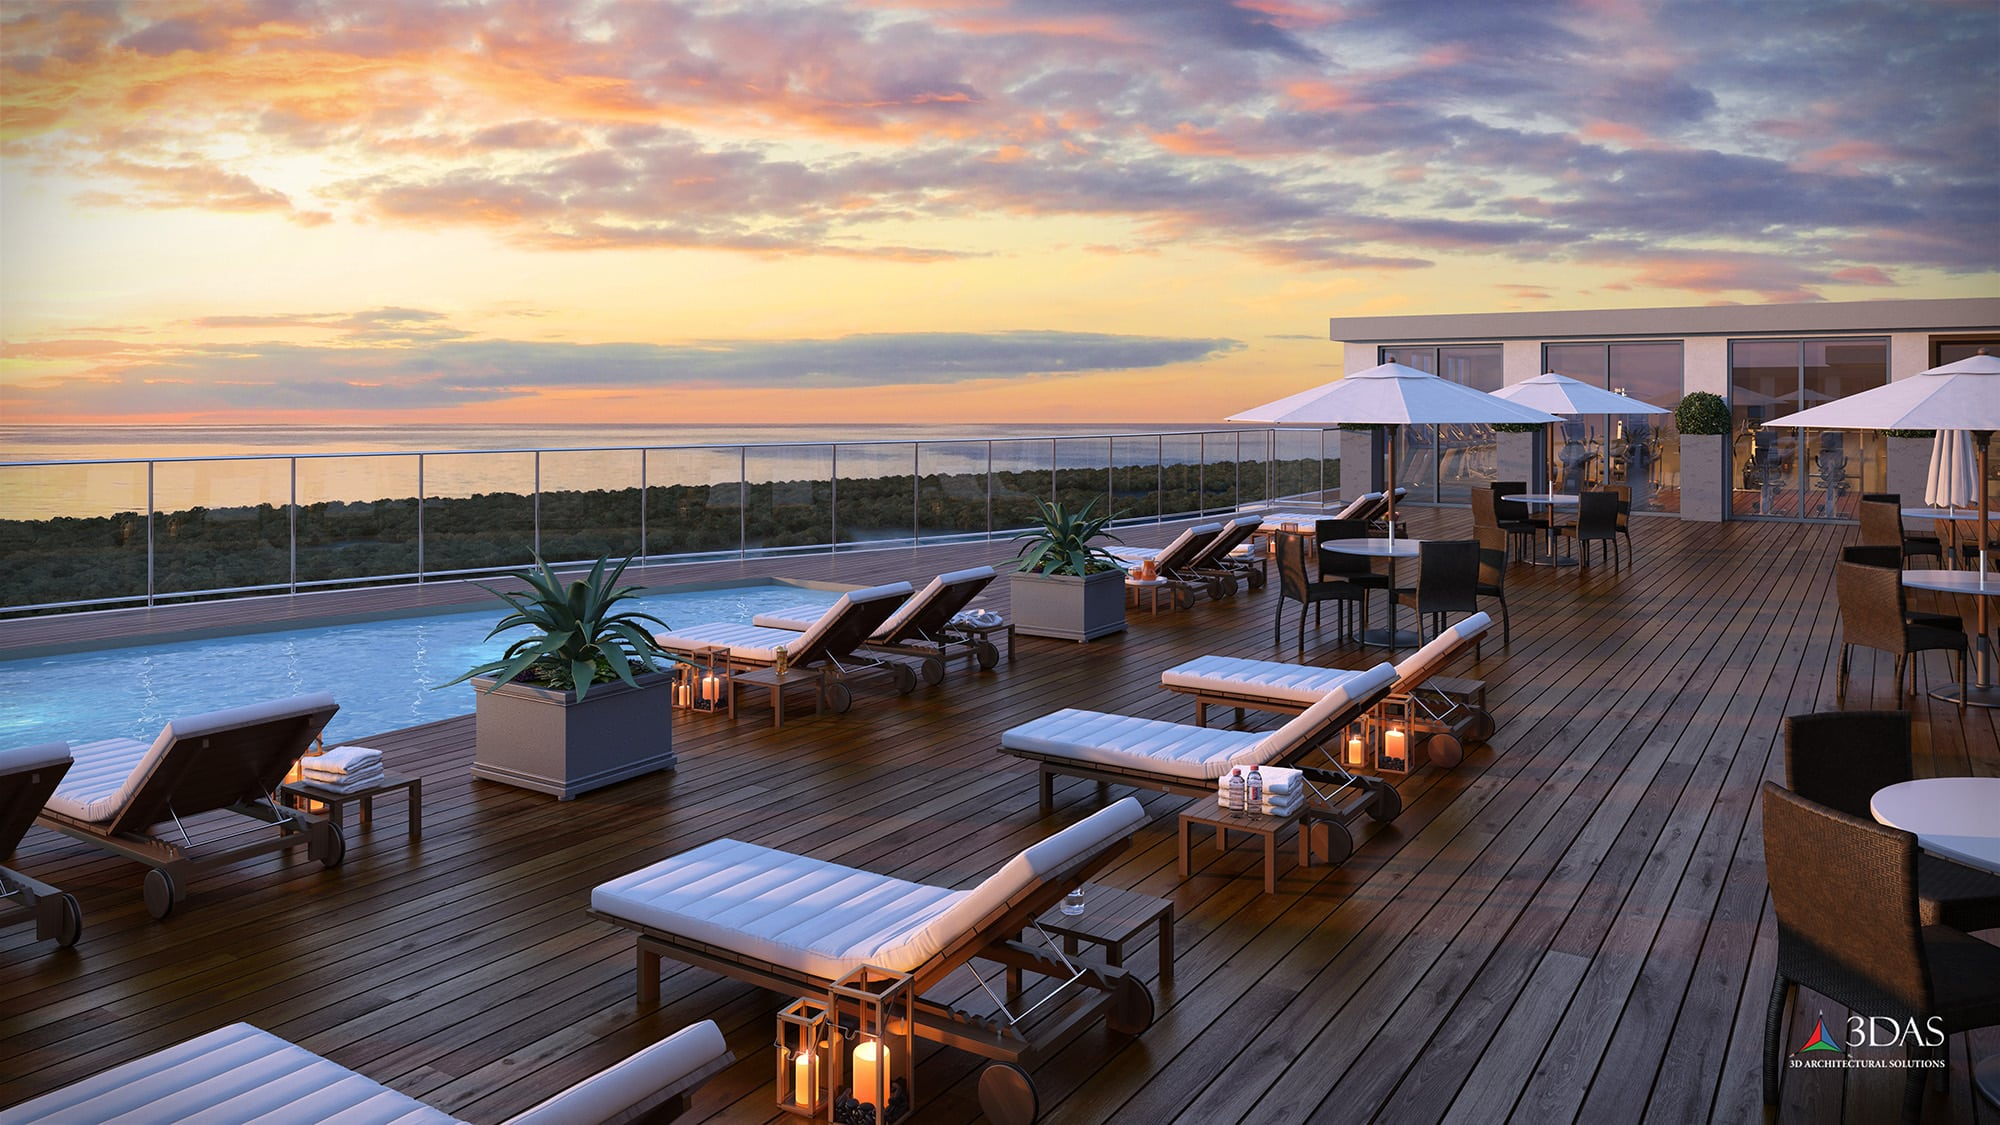 Kalea Bay Rooftop Sunset 3D Rendering in Naples, Florida